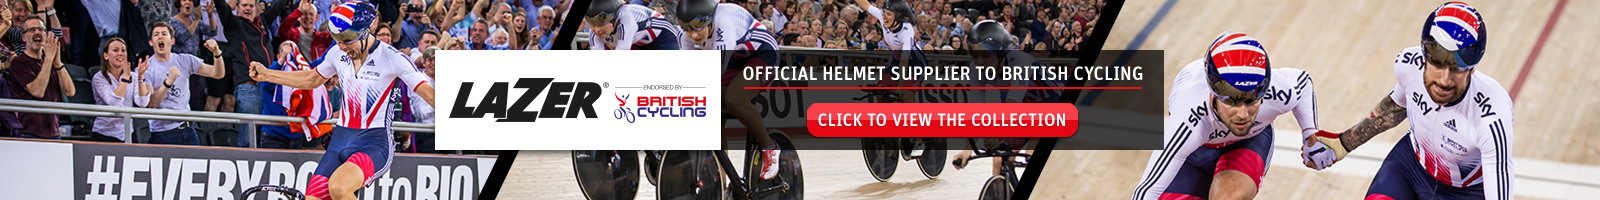 Buy a British Cycling Lazer helmet